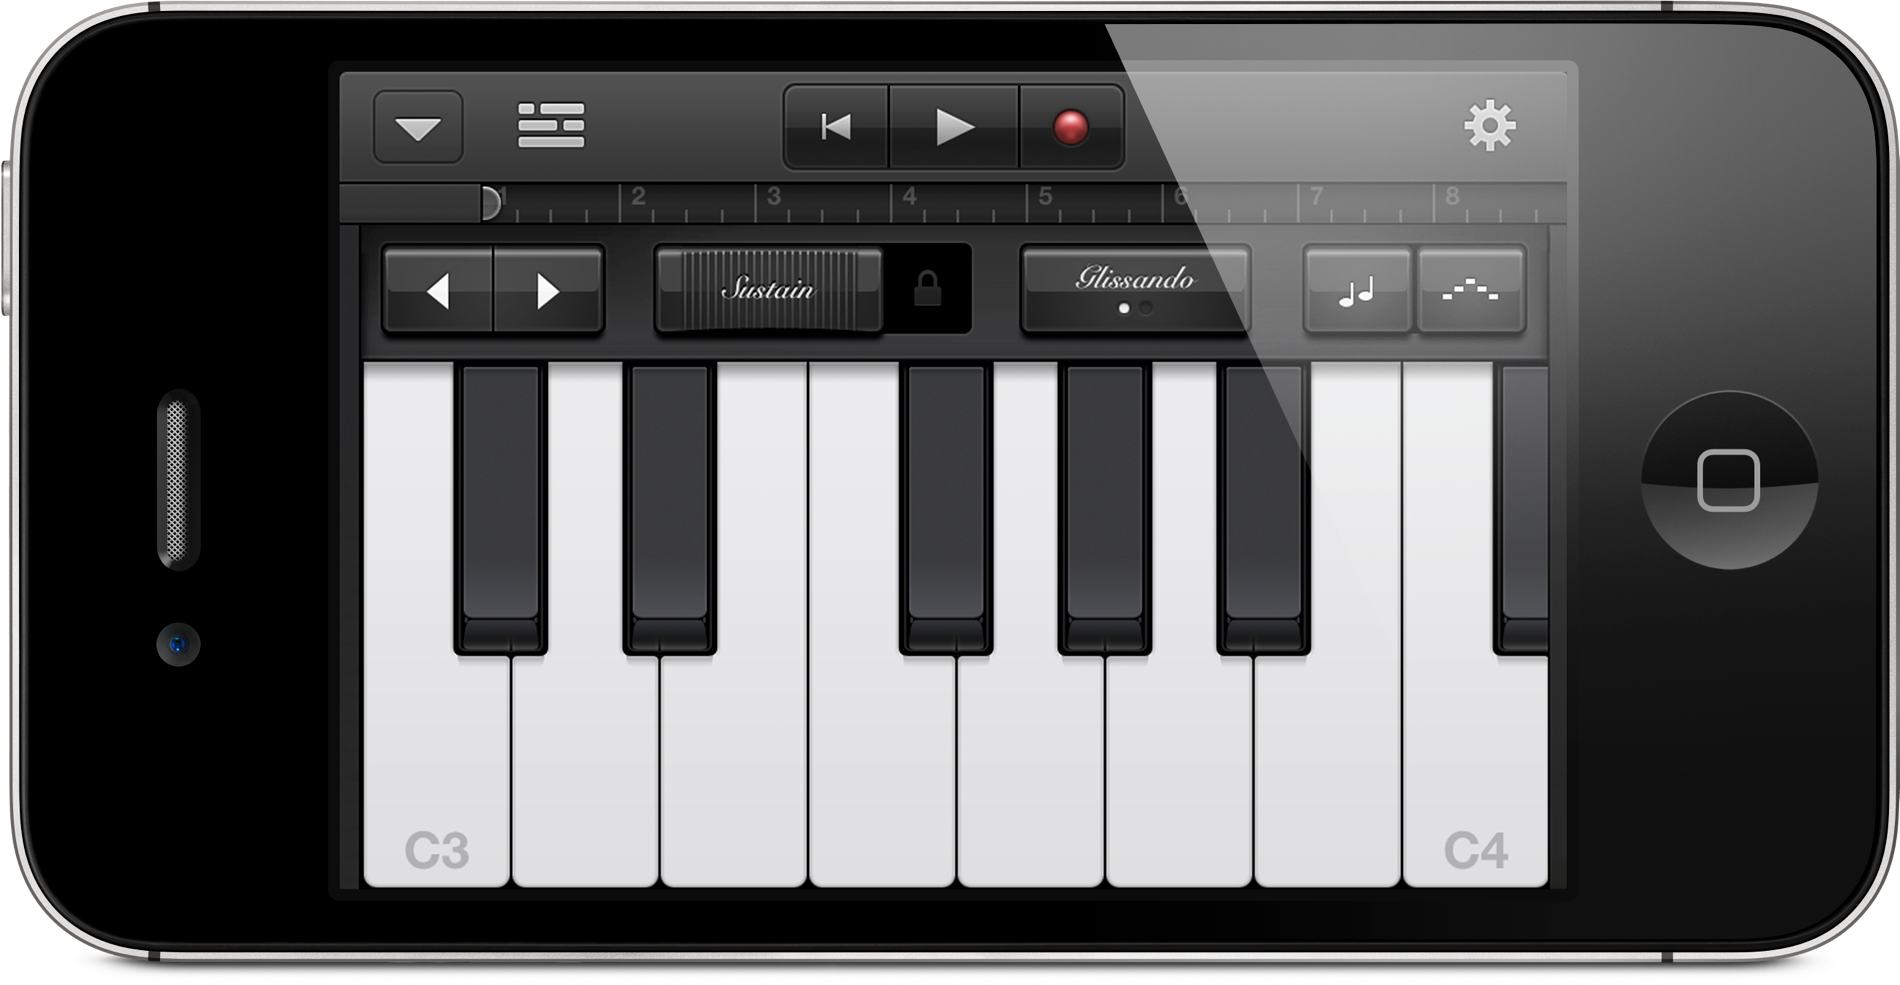 Handheld GarageBand: Apple's Mobile Music Maker on iPhone, iPod